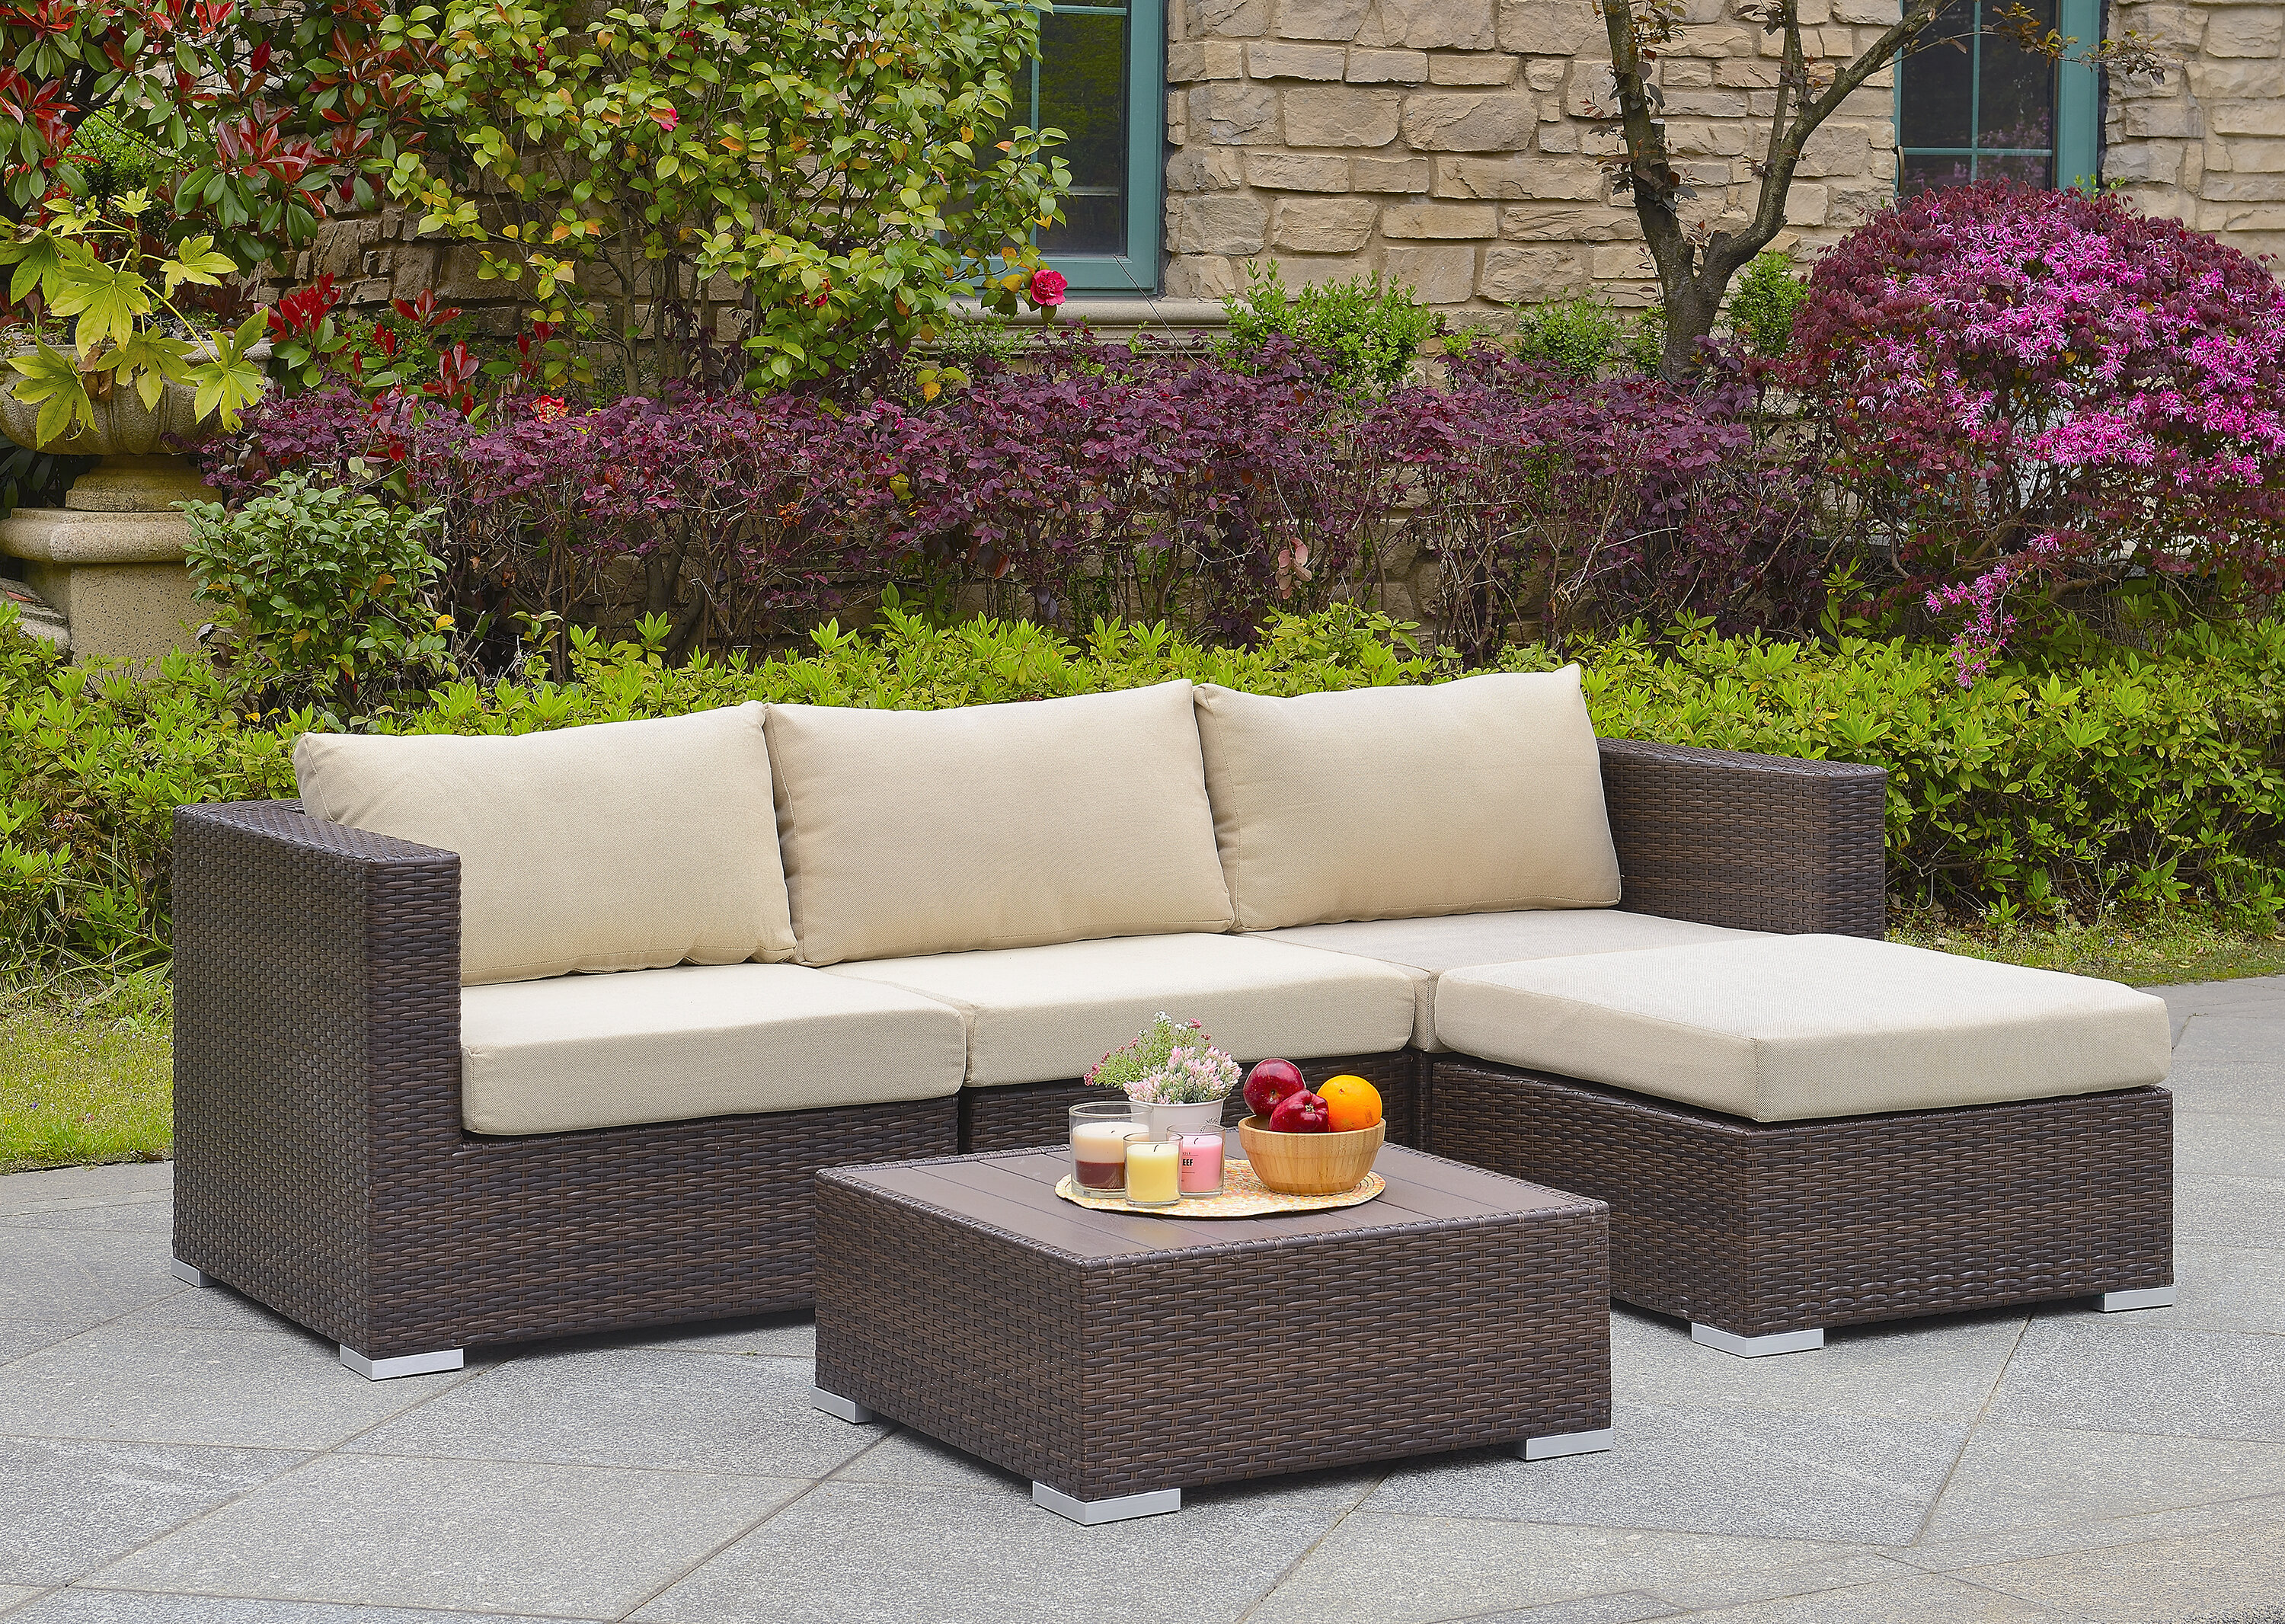 stylish sets round size home outdoor depot kmart garden patio lowes sectional walmart furniture costco sirio patios of full